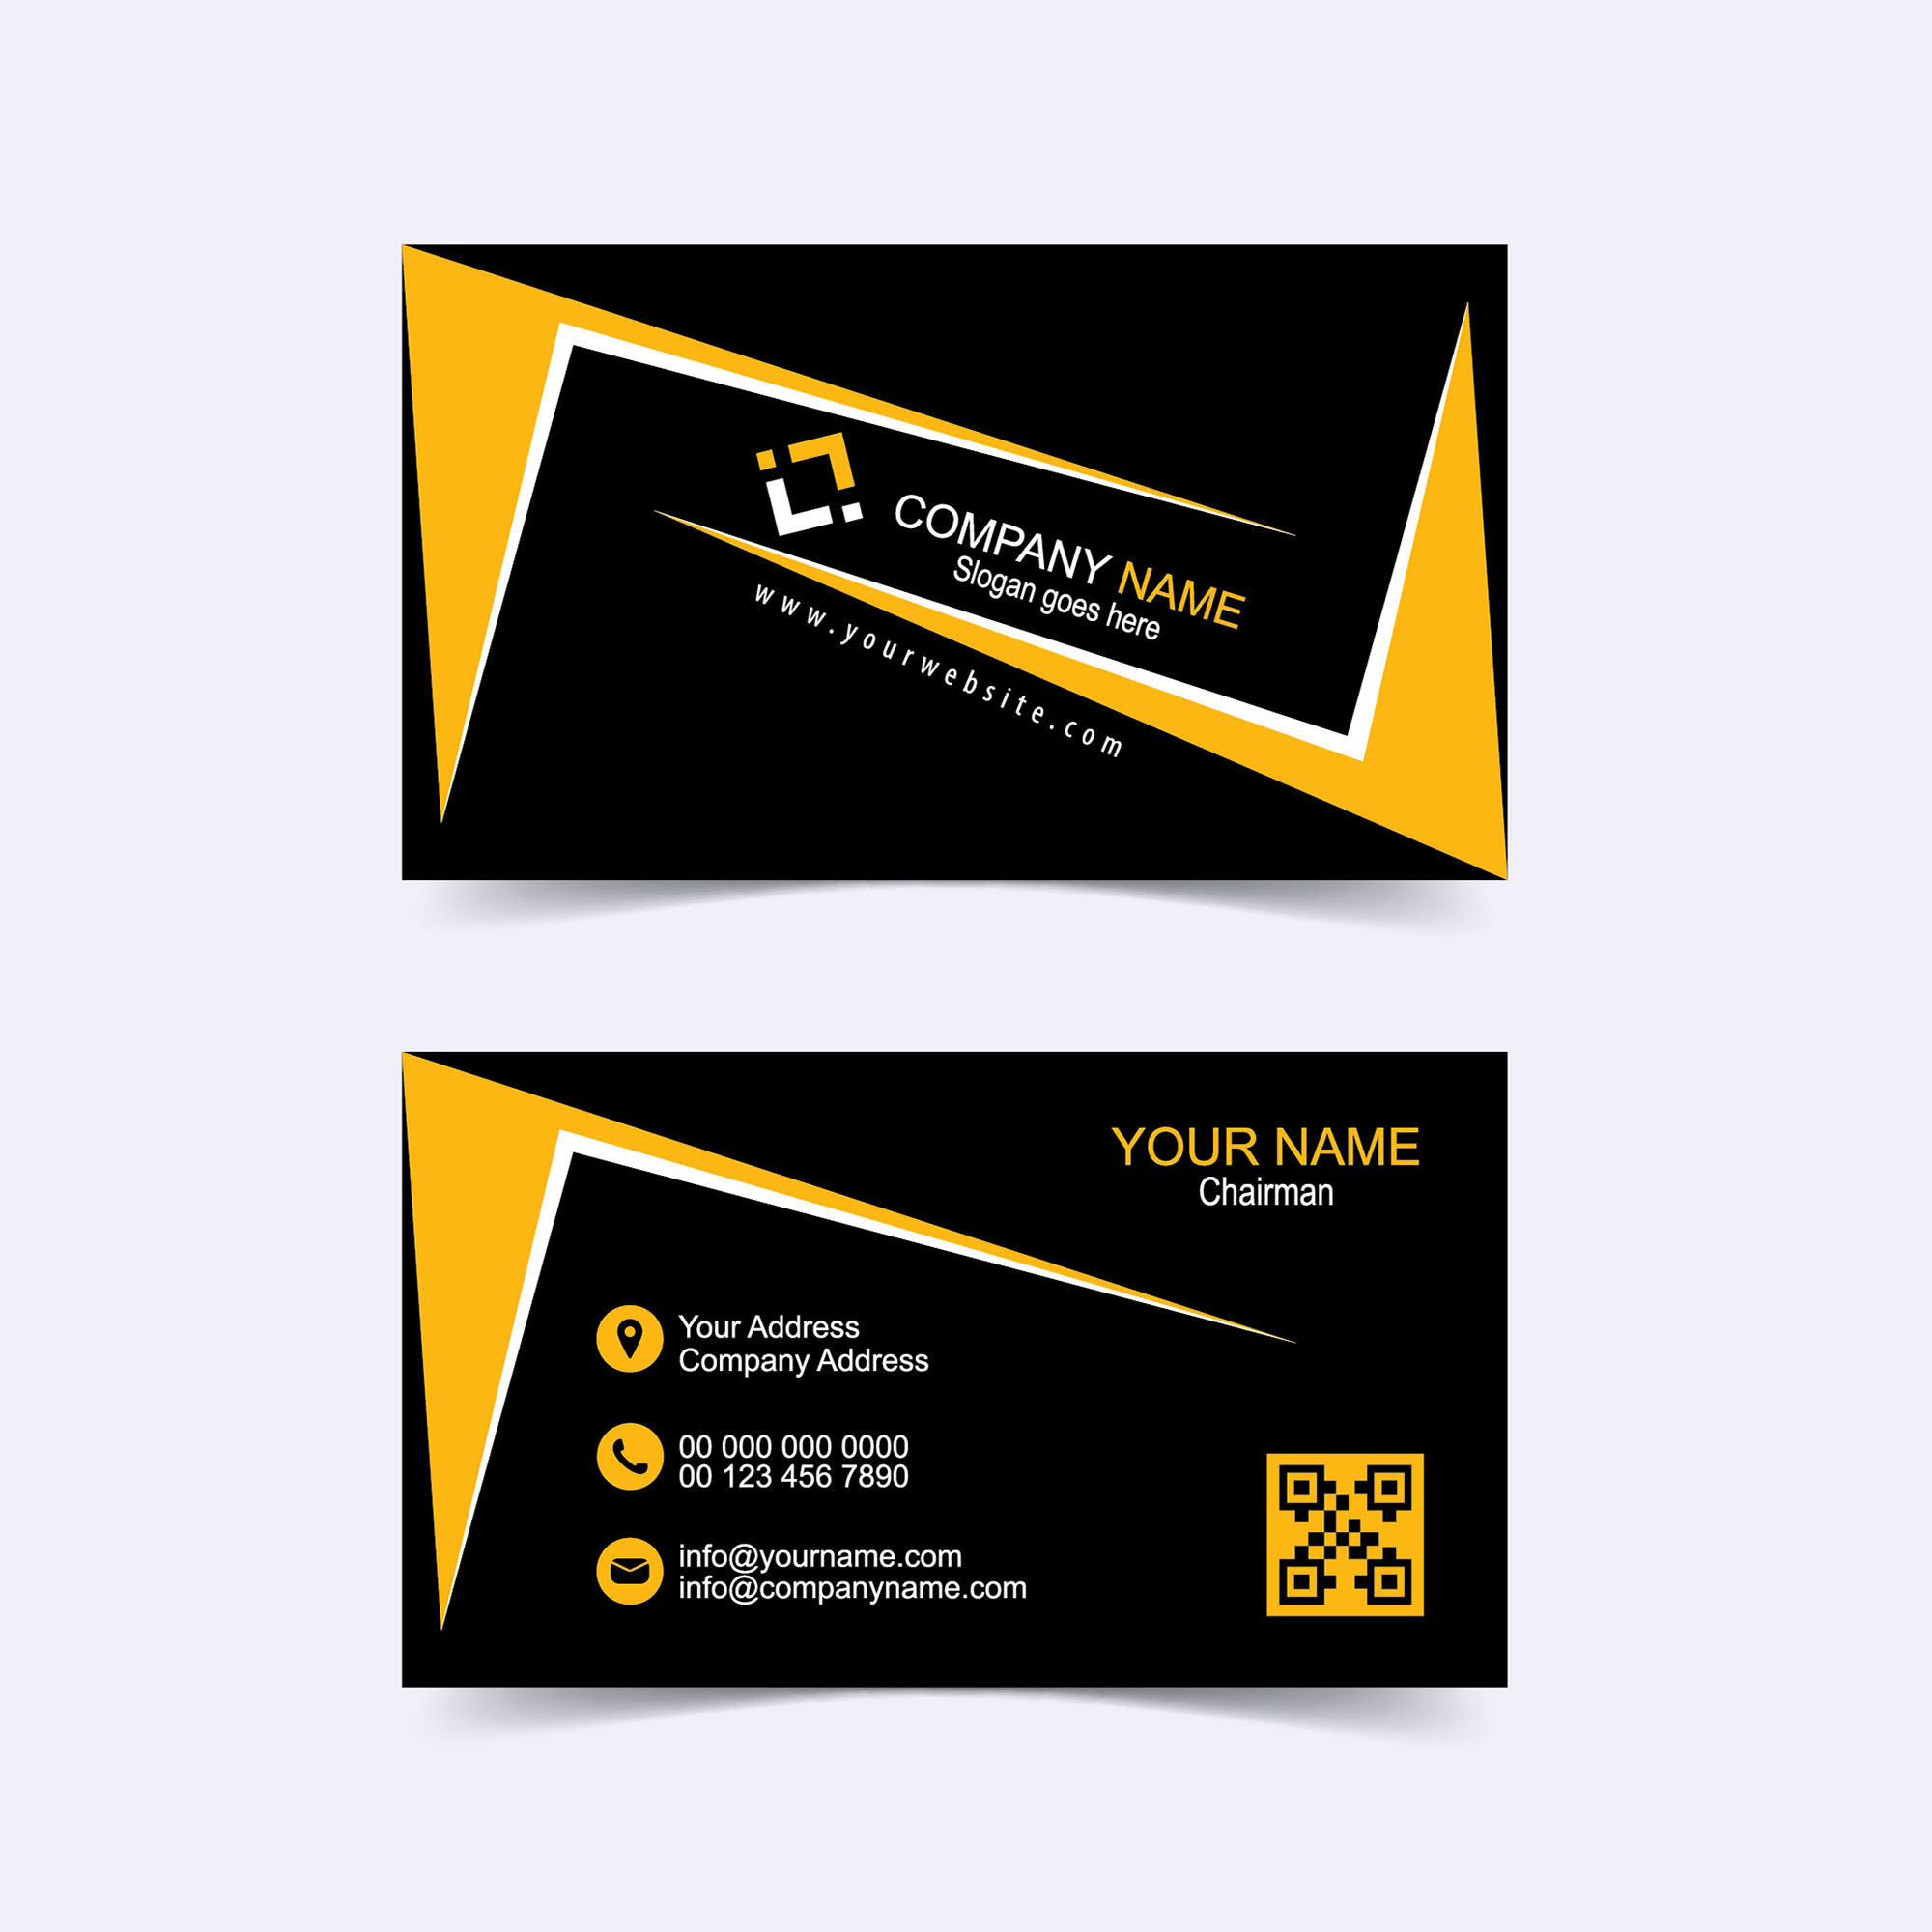 Modern business card template vector free download wisxi business card business cards business card design business card template design templates wajeb Choice Image